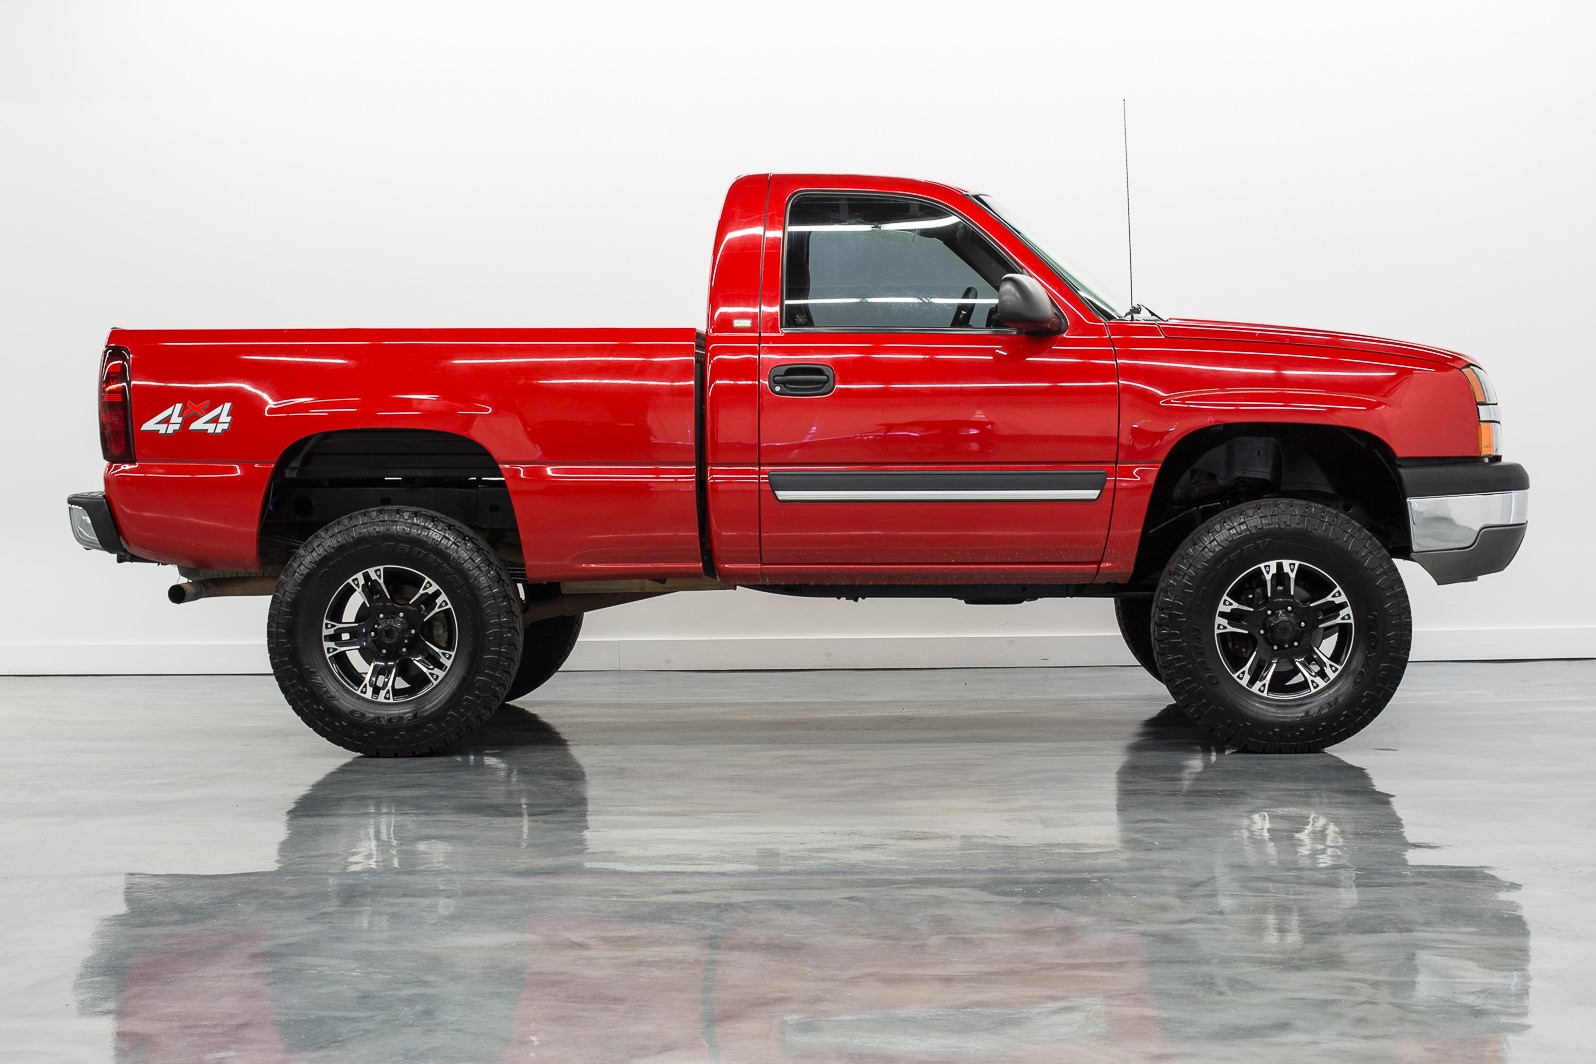 Silverado 2003 chevrolet silverado 2003 Chevrolet Silverado 1500 Standard Cab 4X4 | Ultimate Rides